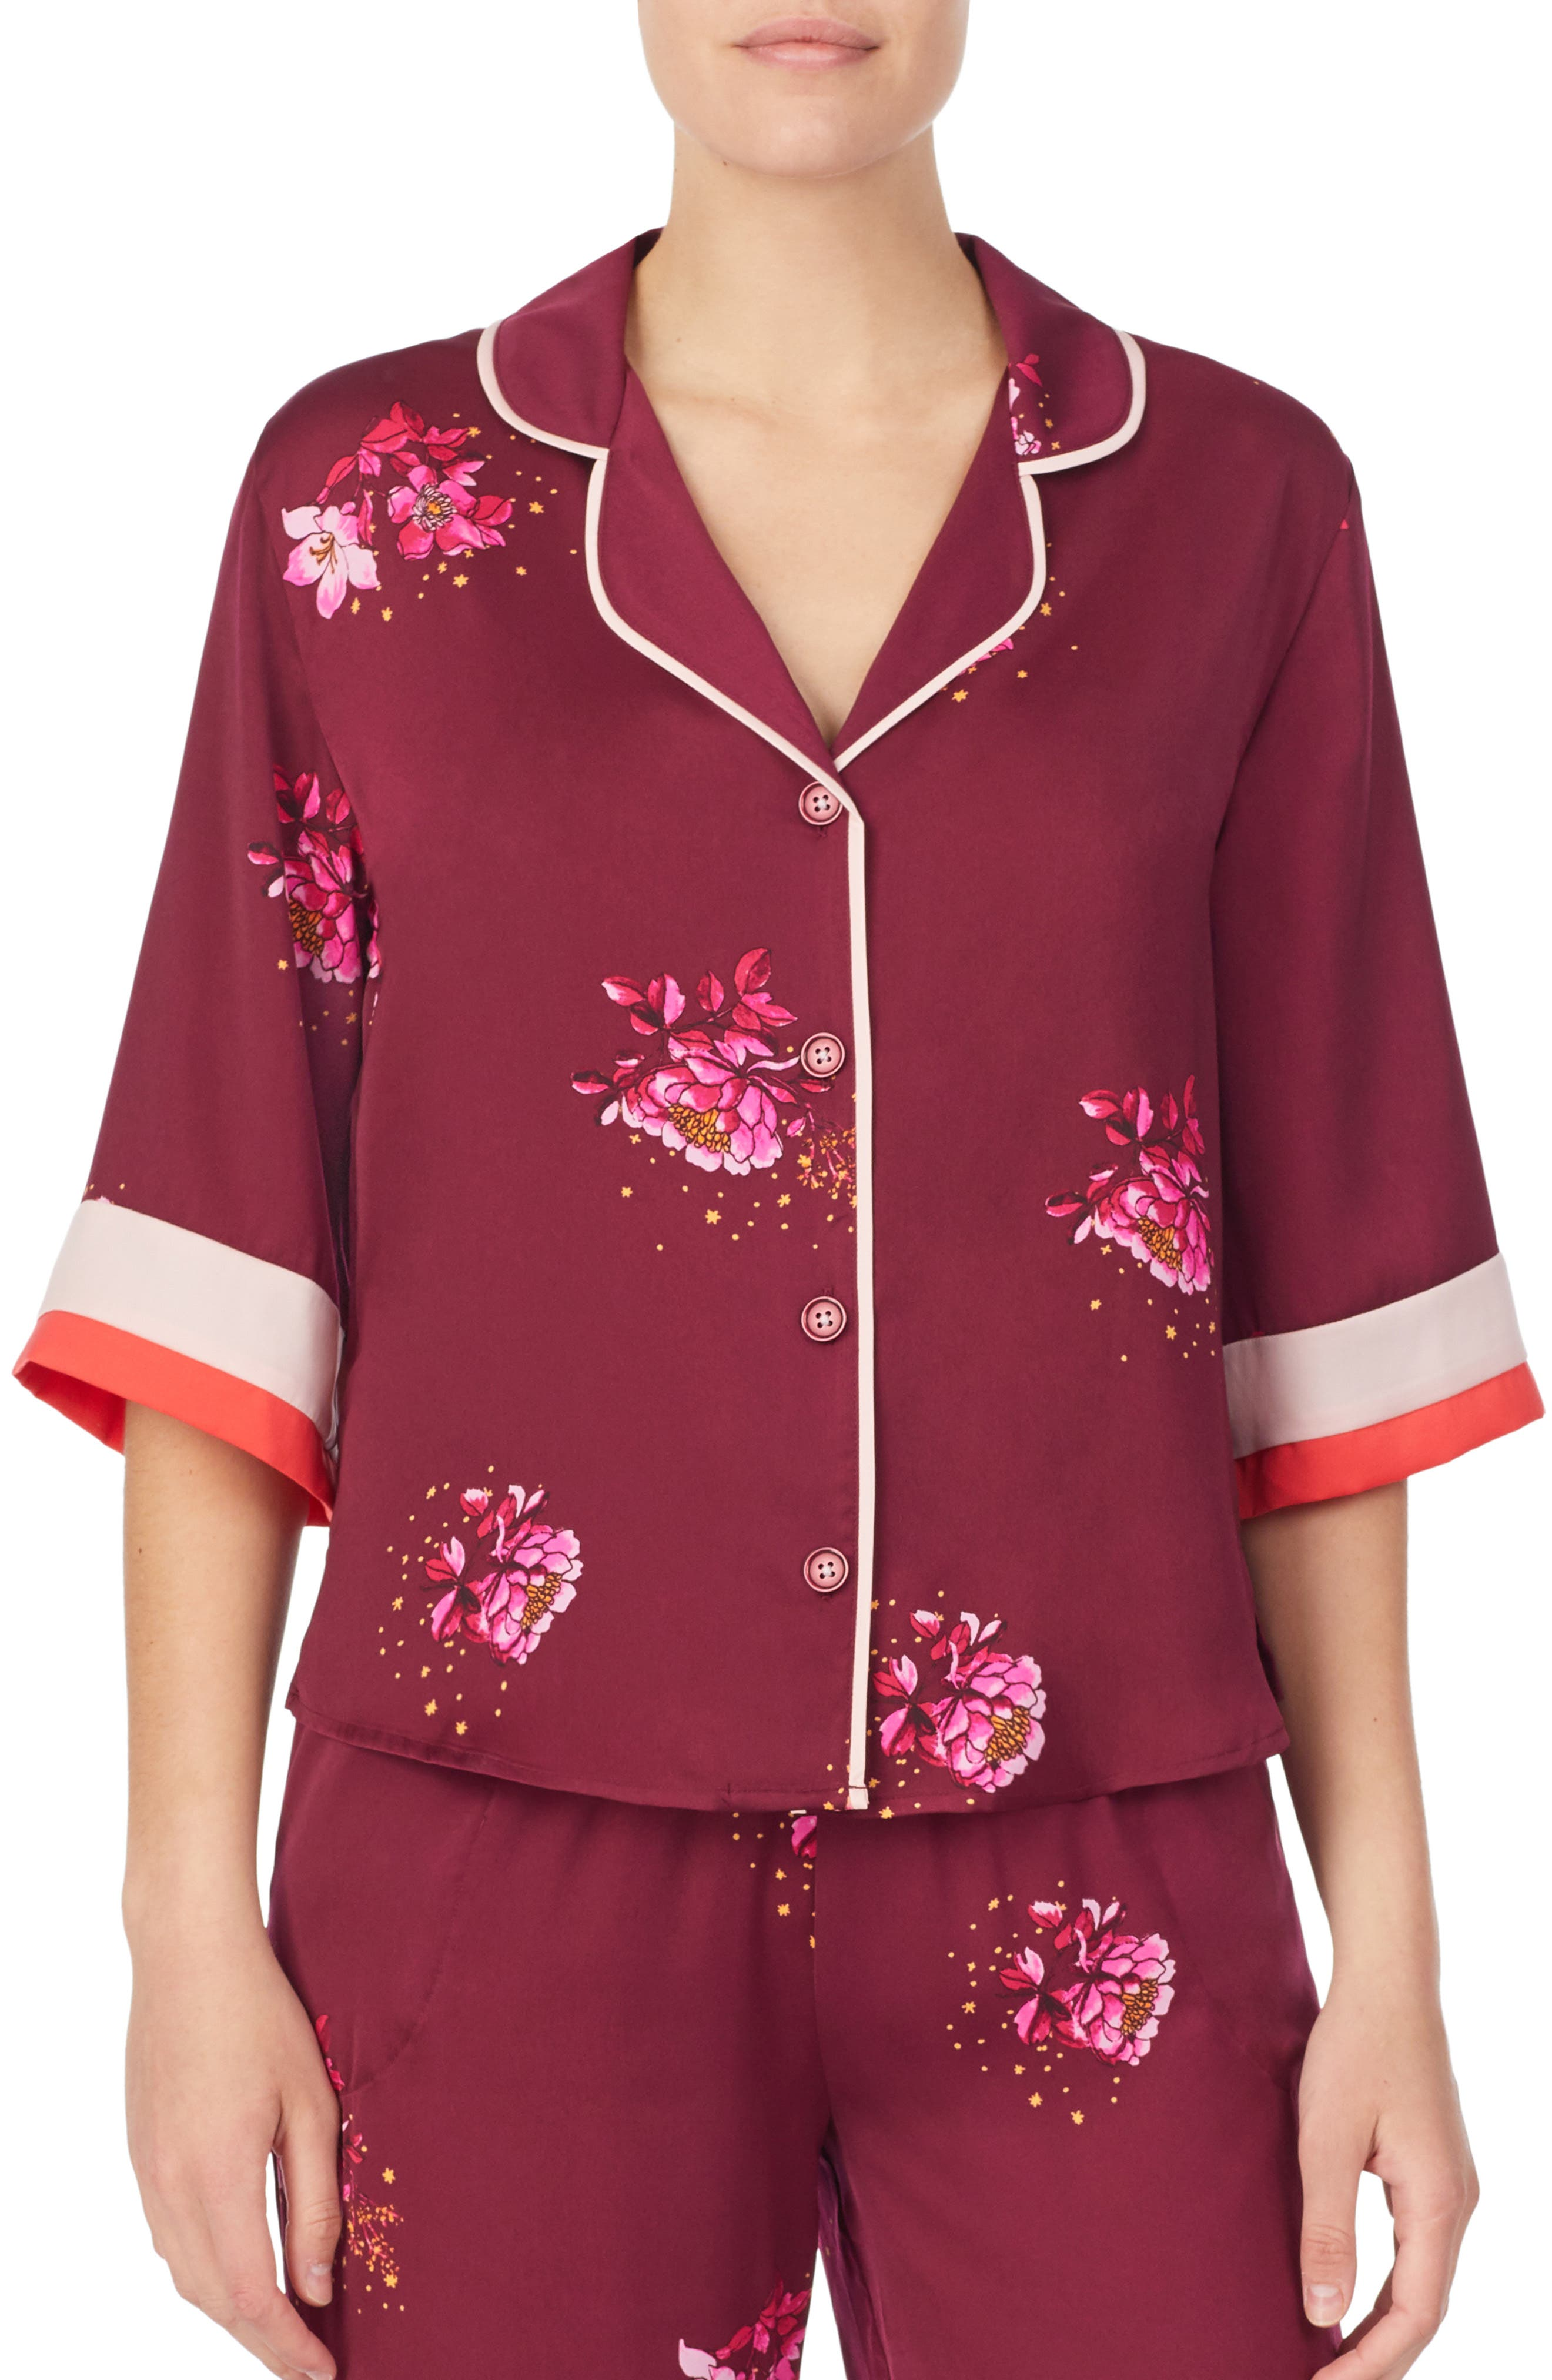 Room Service Pajama Top, Burgundy (Nordstrom Exclusive)